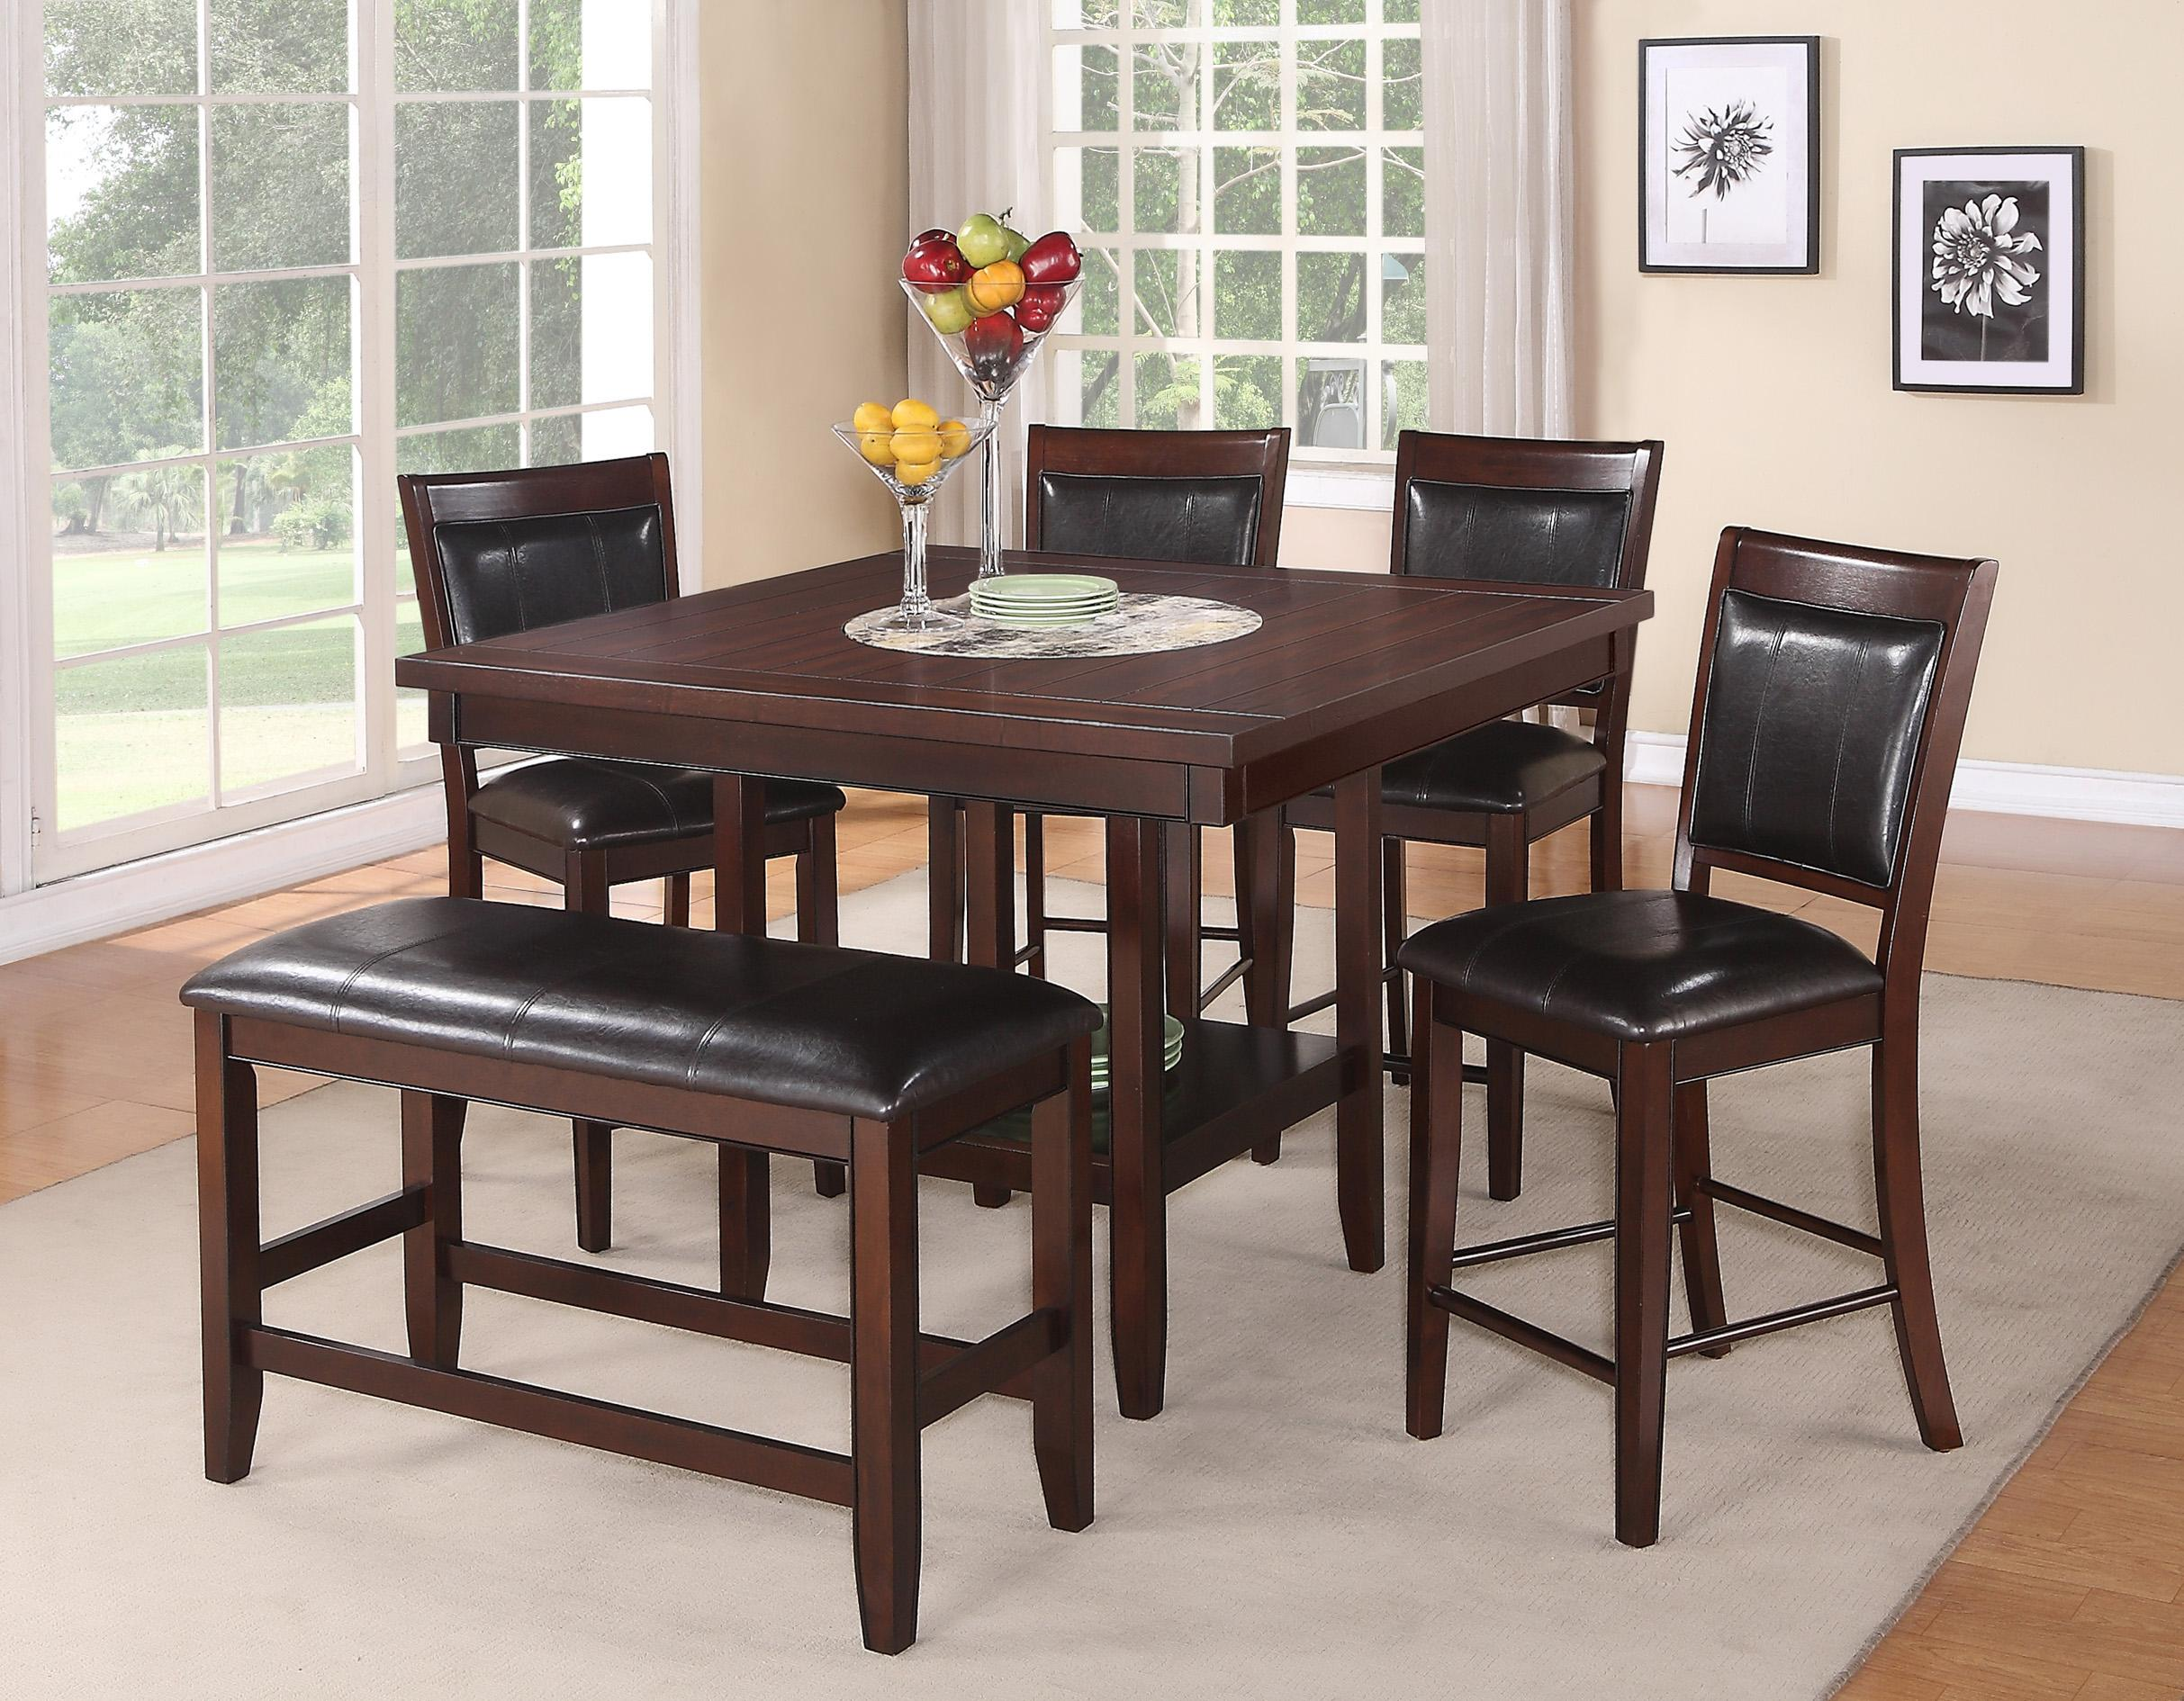 Excellent Crown Mark Fulton 6-Pc Counter Height Table, Chair & Bench Set  UA63